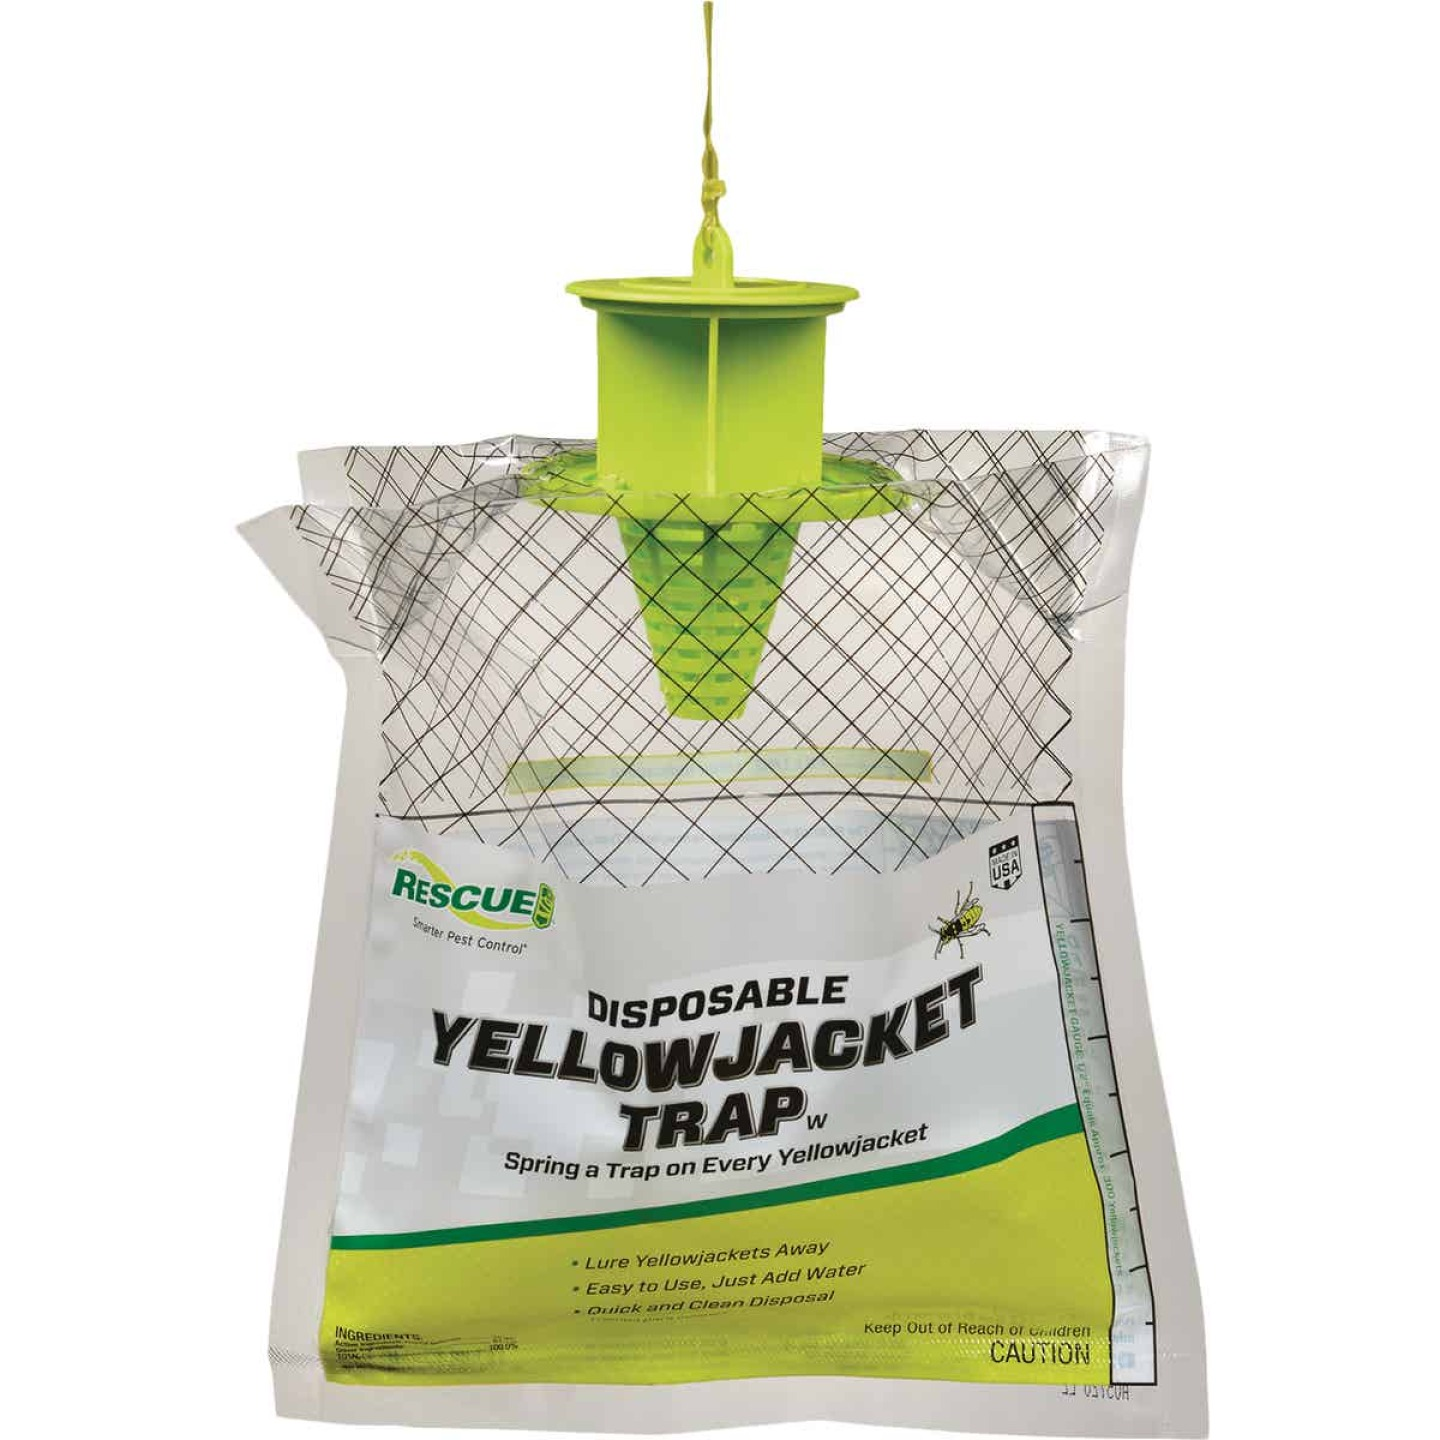 Rescue Disposable Yellow Jacket Trap, Western Version Image 1